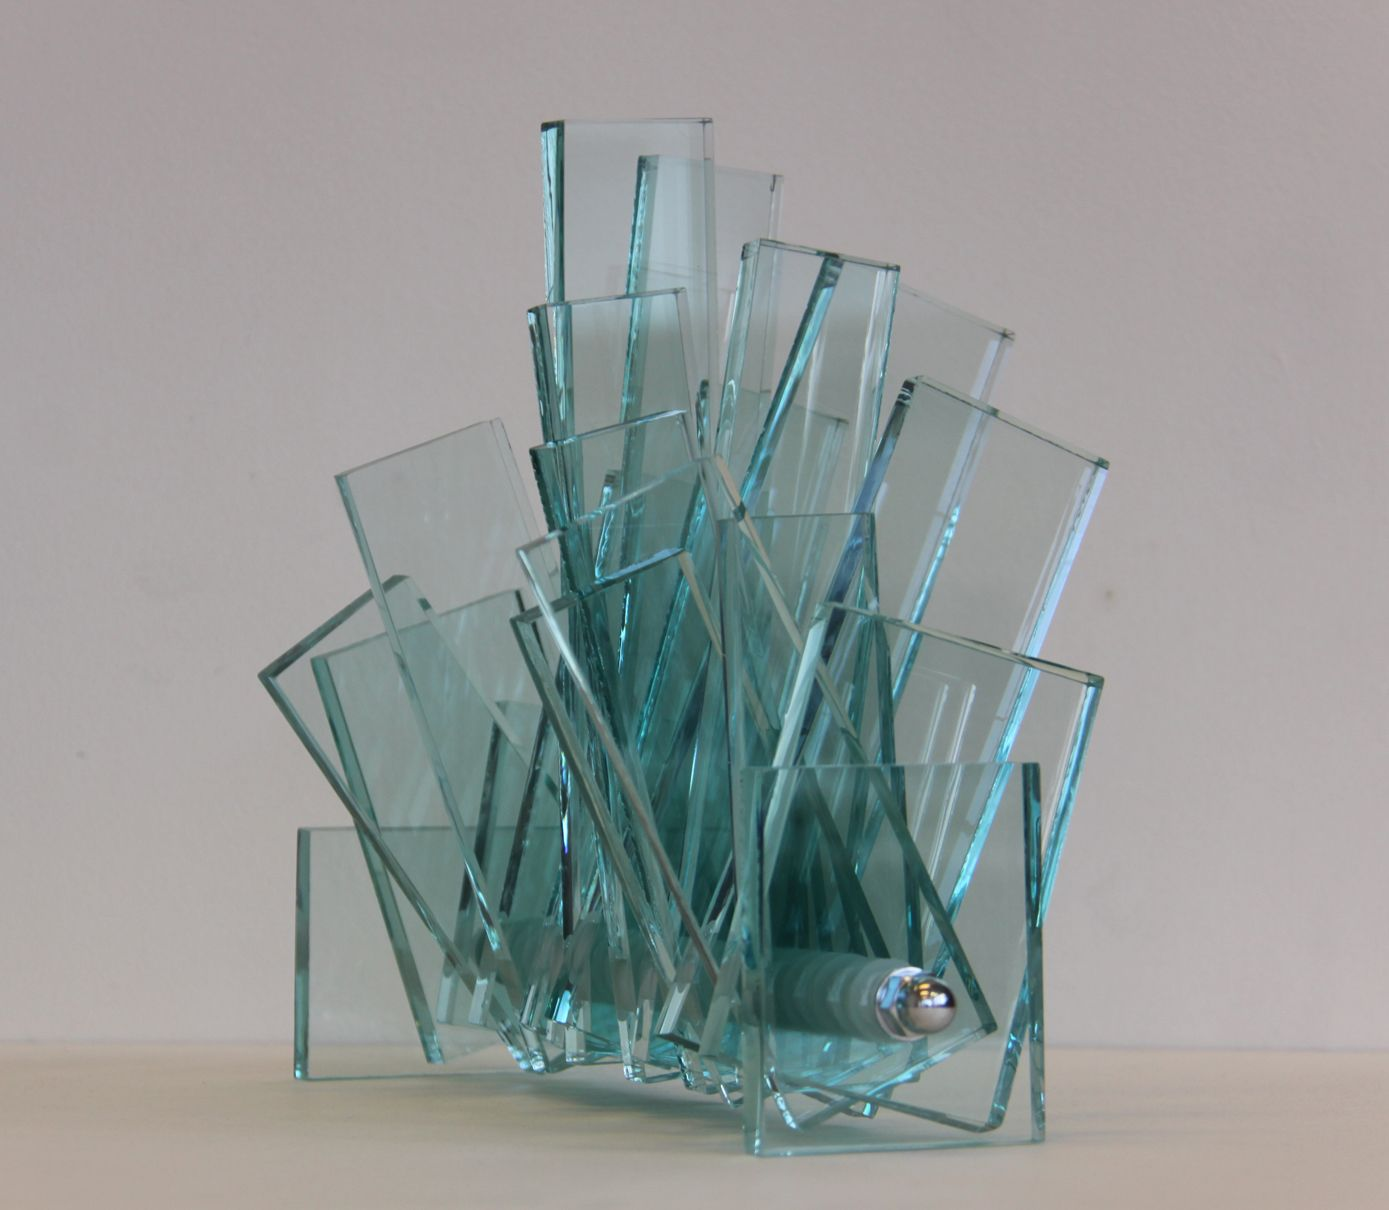 glass statues | MOBILIS A – 28,5 x 8(23) x 10(39) glass sculpture. Just plain glass from a window. Amazing that is looks so nice.